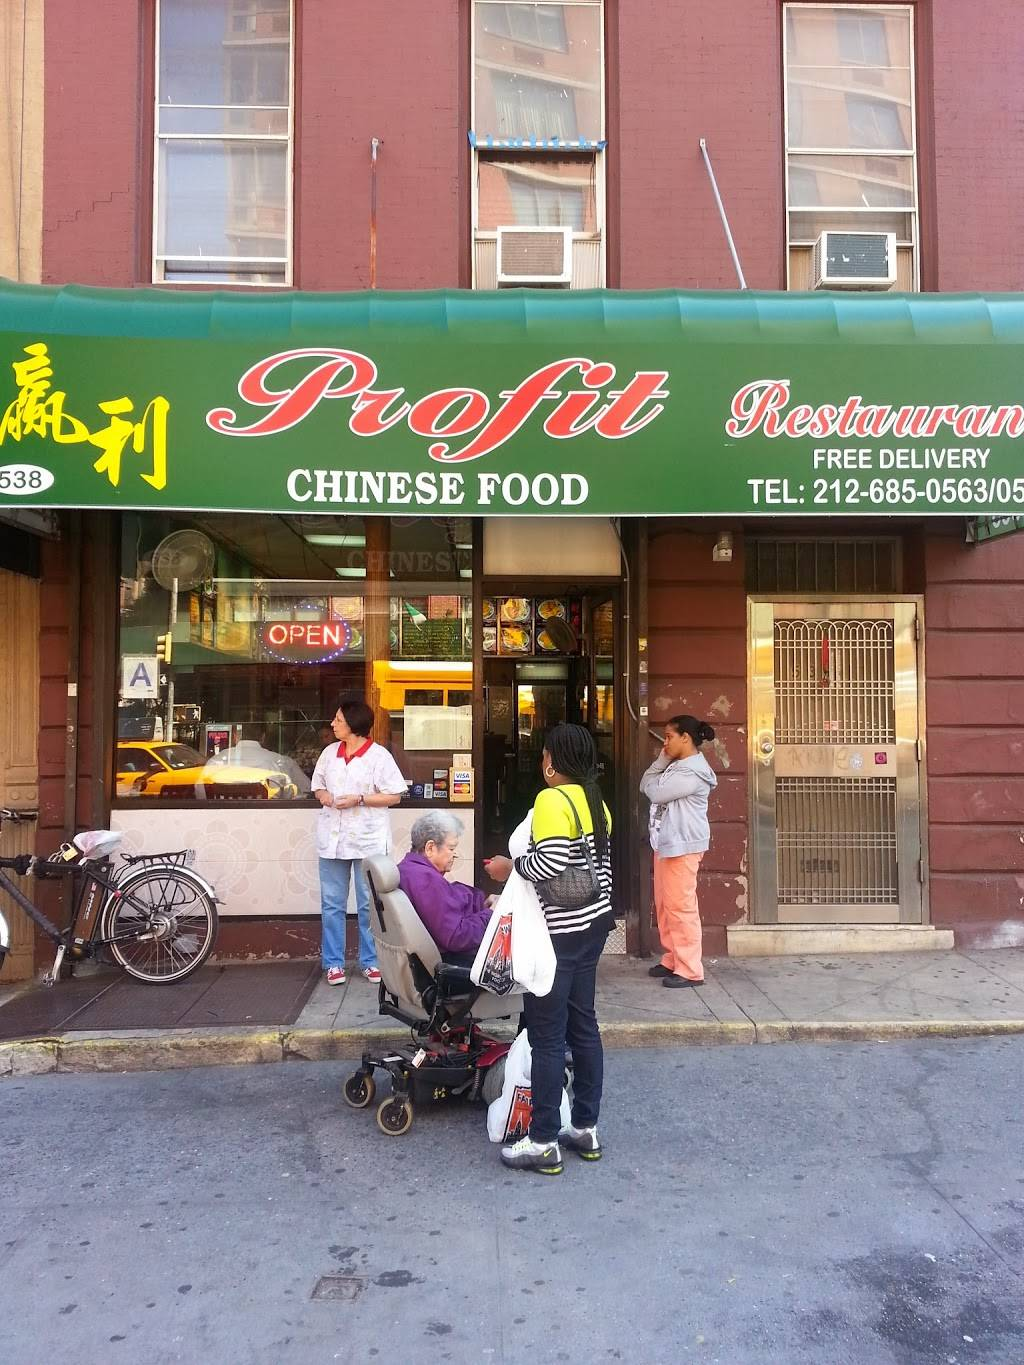 Profit | restaurant | 538 2nd Ave, New York, NY 10016, USA | 2126850563 OR +1 212-685-0563